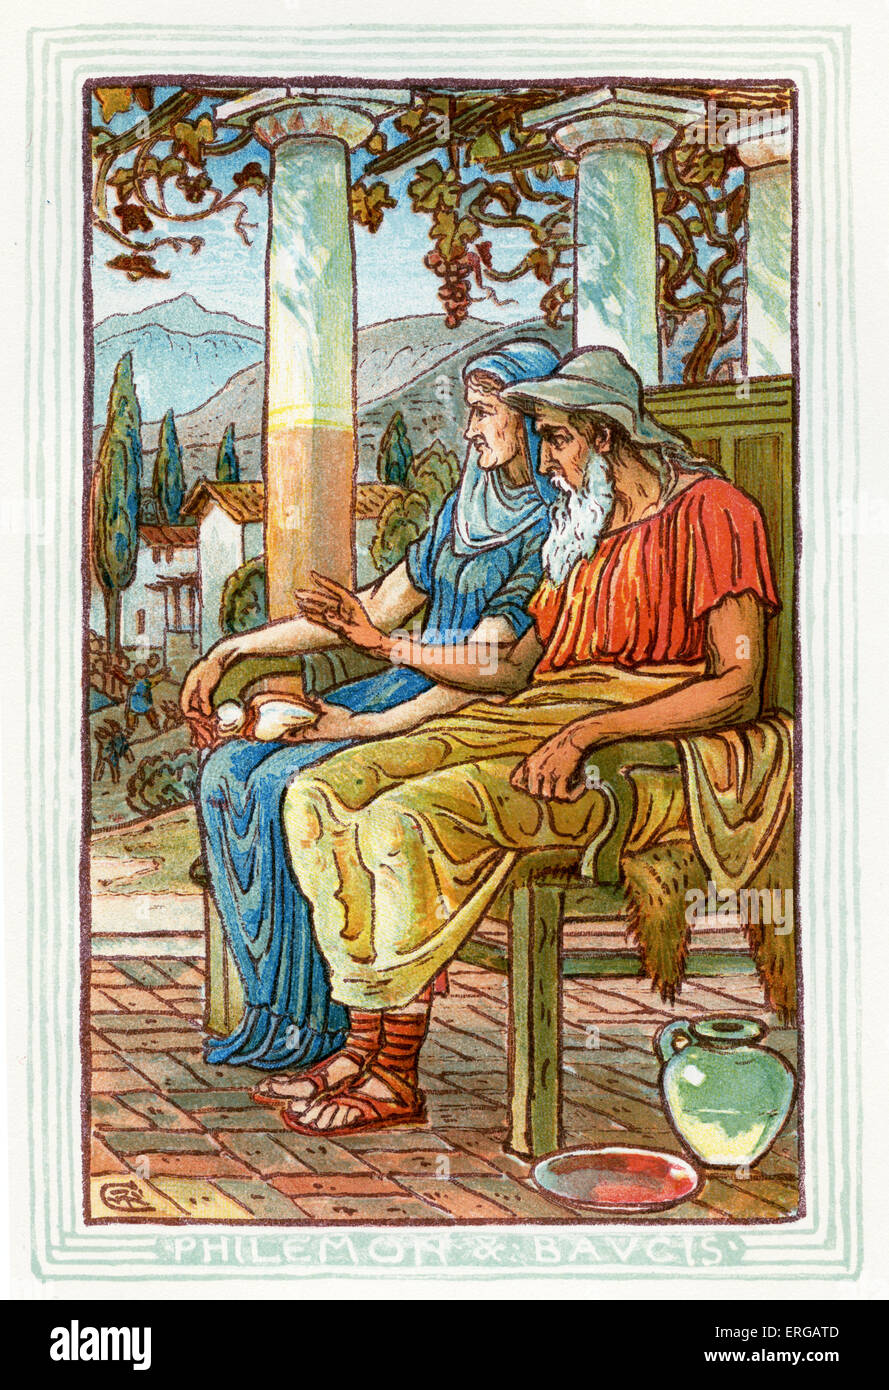 Philemon and Baucis. Retelling of Greek Myths by Nathaniel Hawthorne (1804 – 1864). Illustrations by Walter Crane - Stock Image